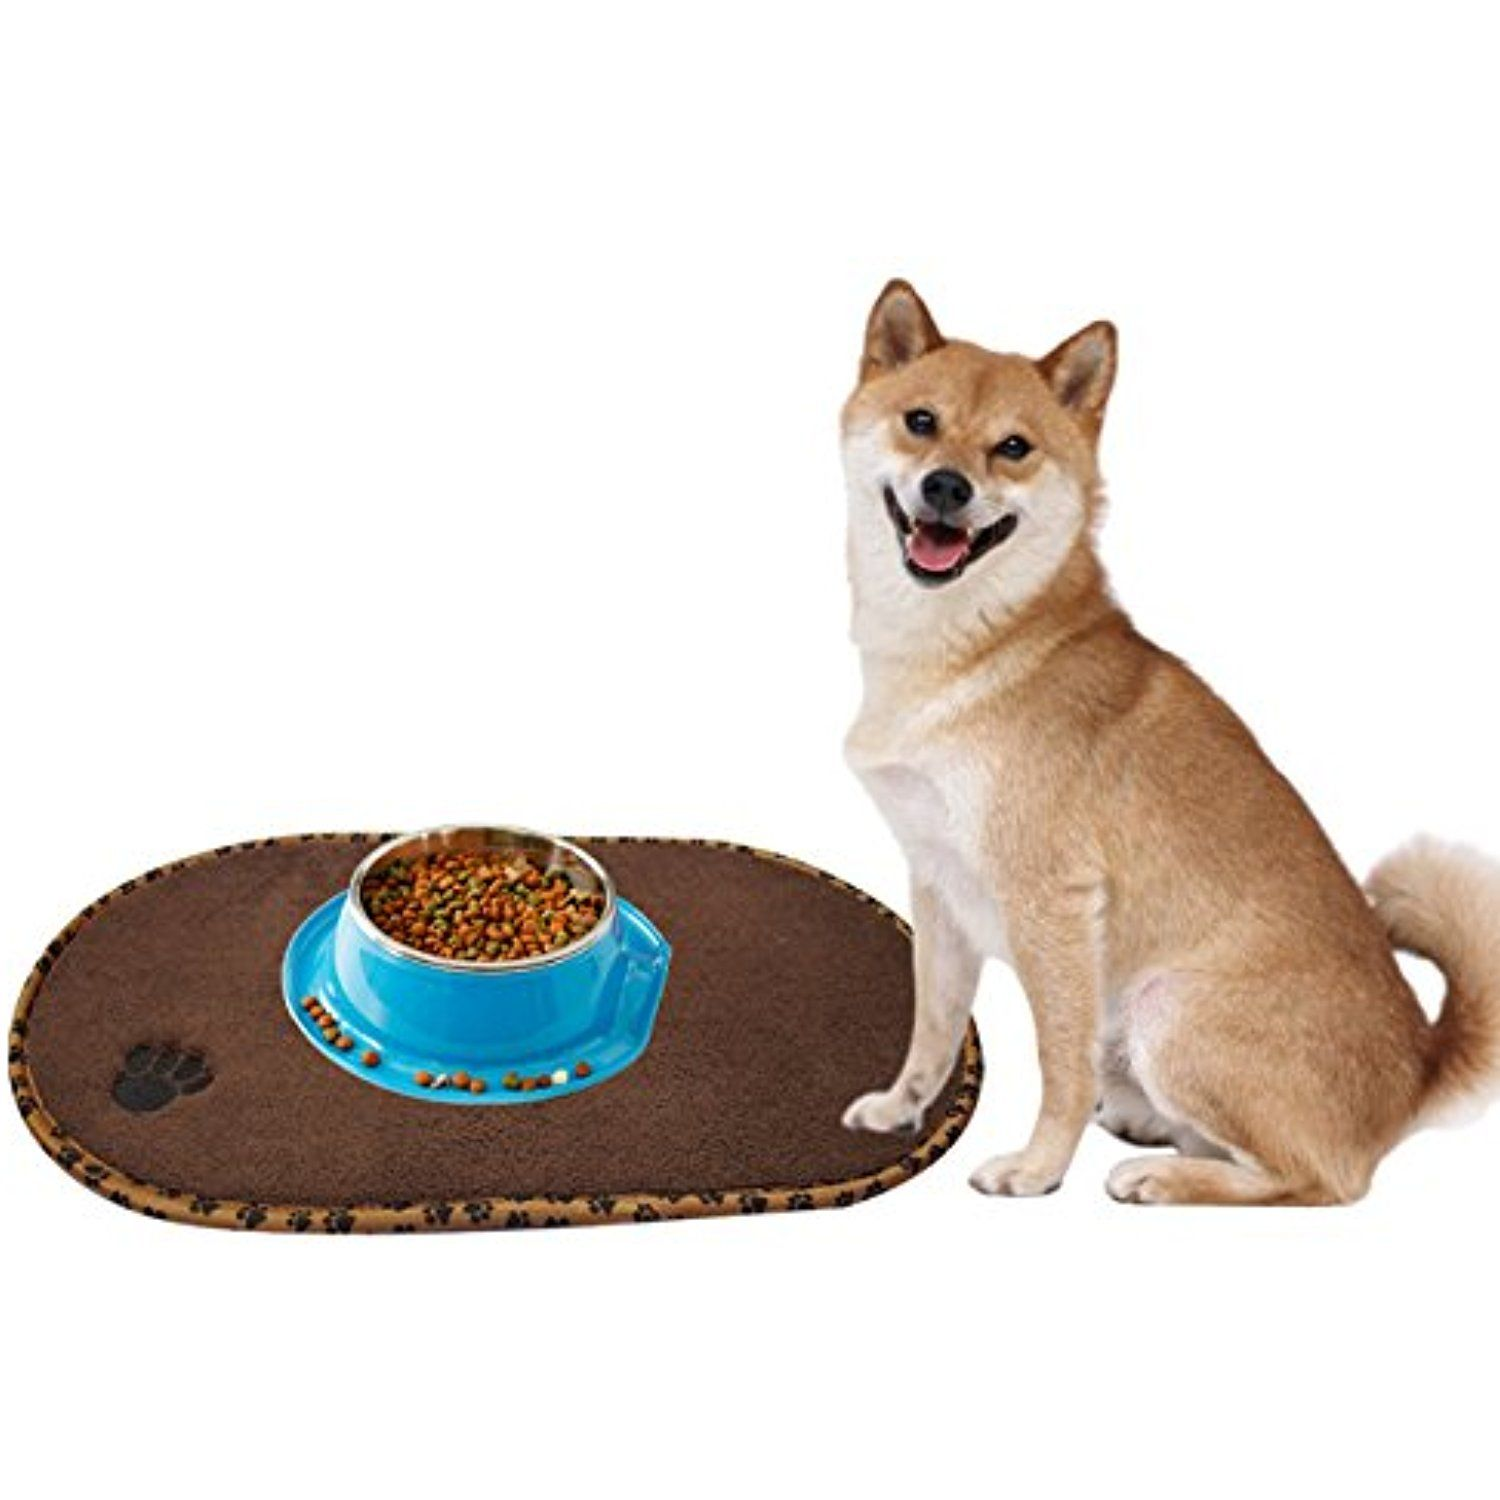 mats crop waterproof either light dog tray for pet feeding cats bowl non cat dogs center mat and grey delivered are randomly colours or silicone driffy beige slip products